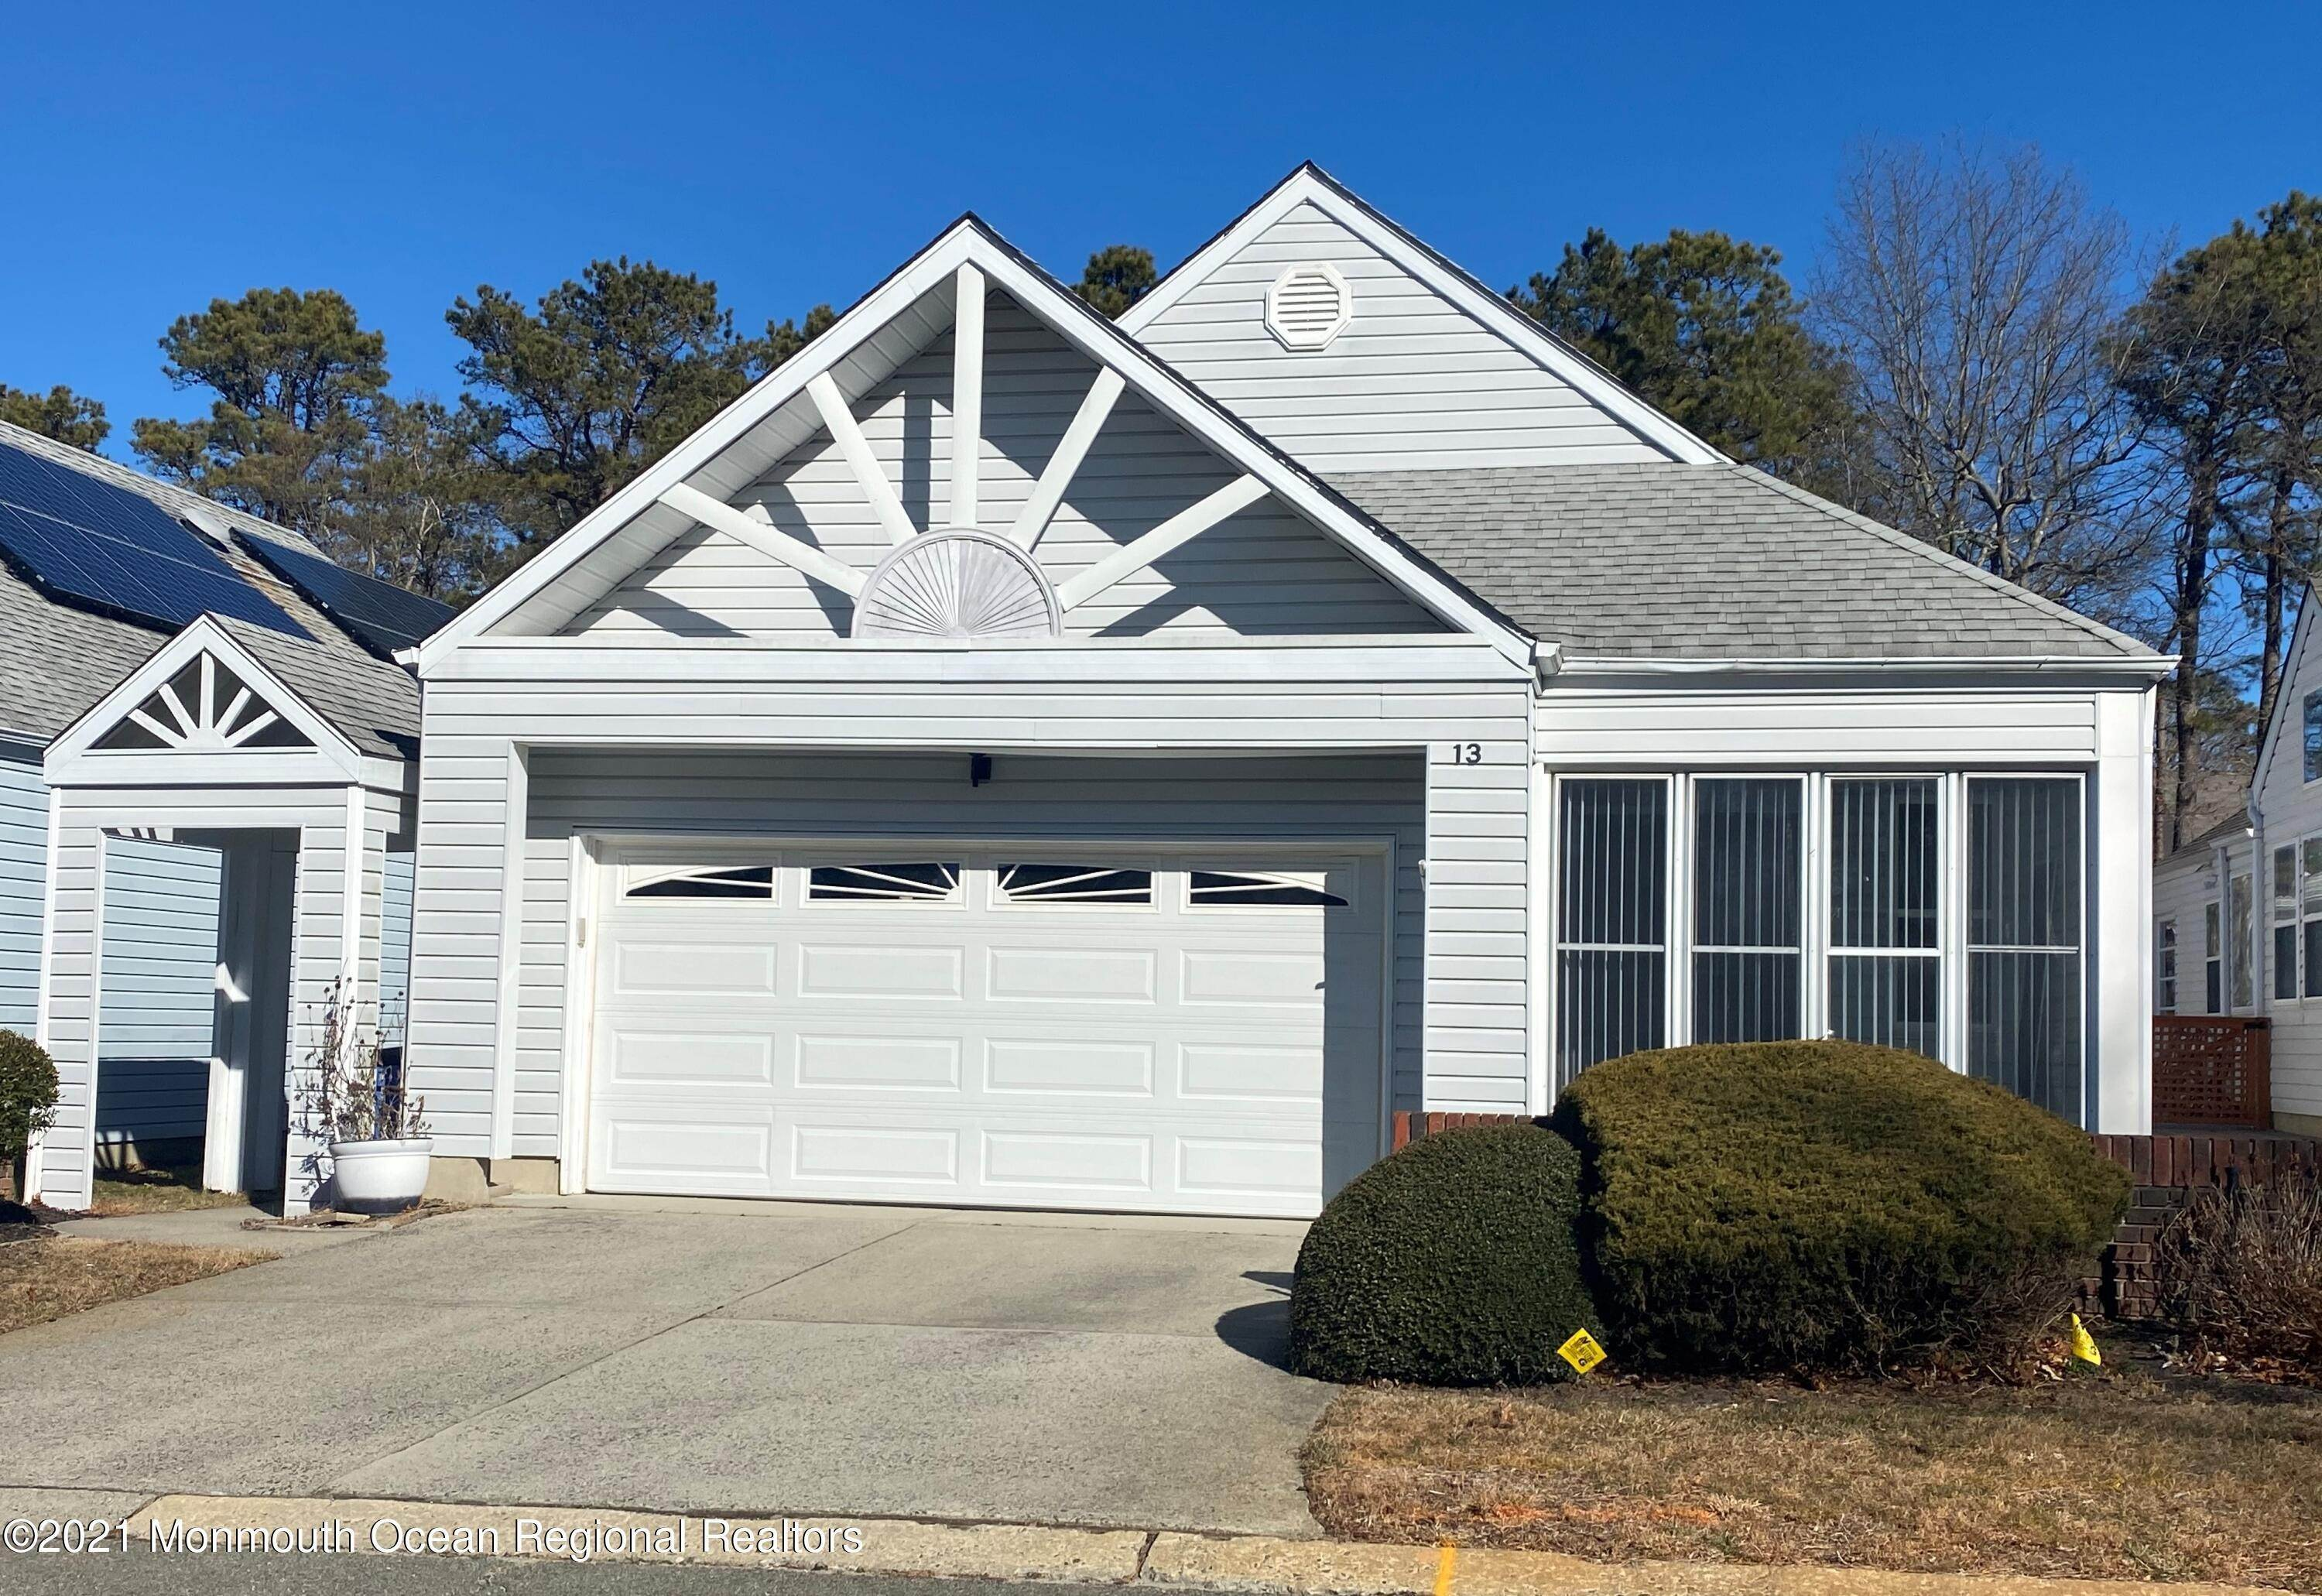 Property for Sale at 13 Newport Road Manahawkin, New Jersey 08050 United States